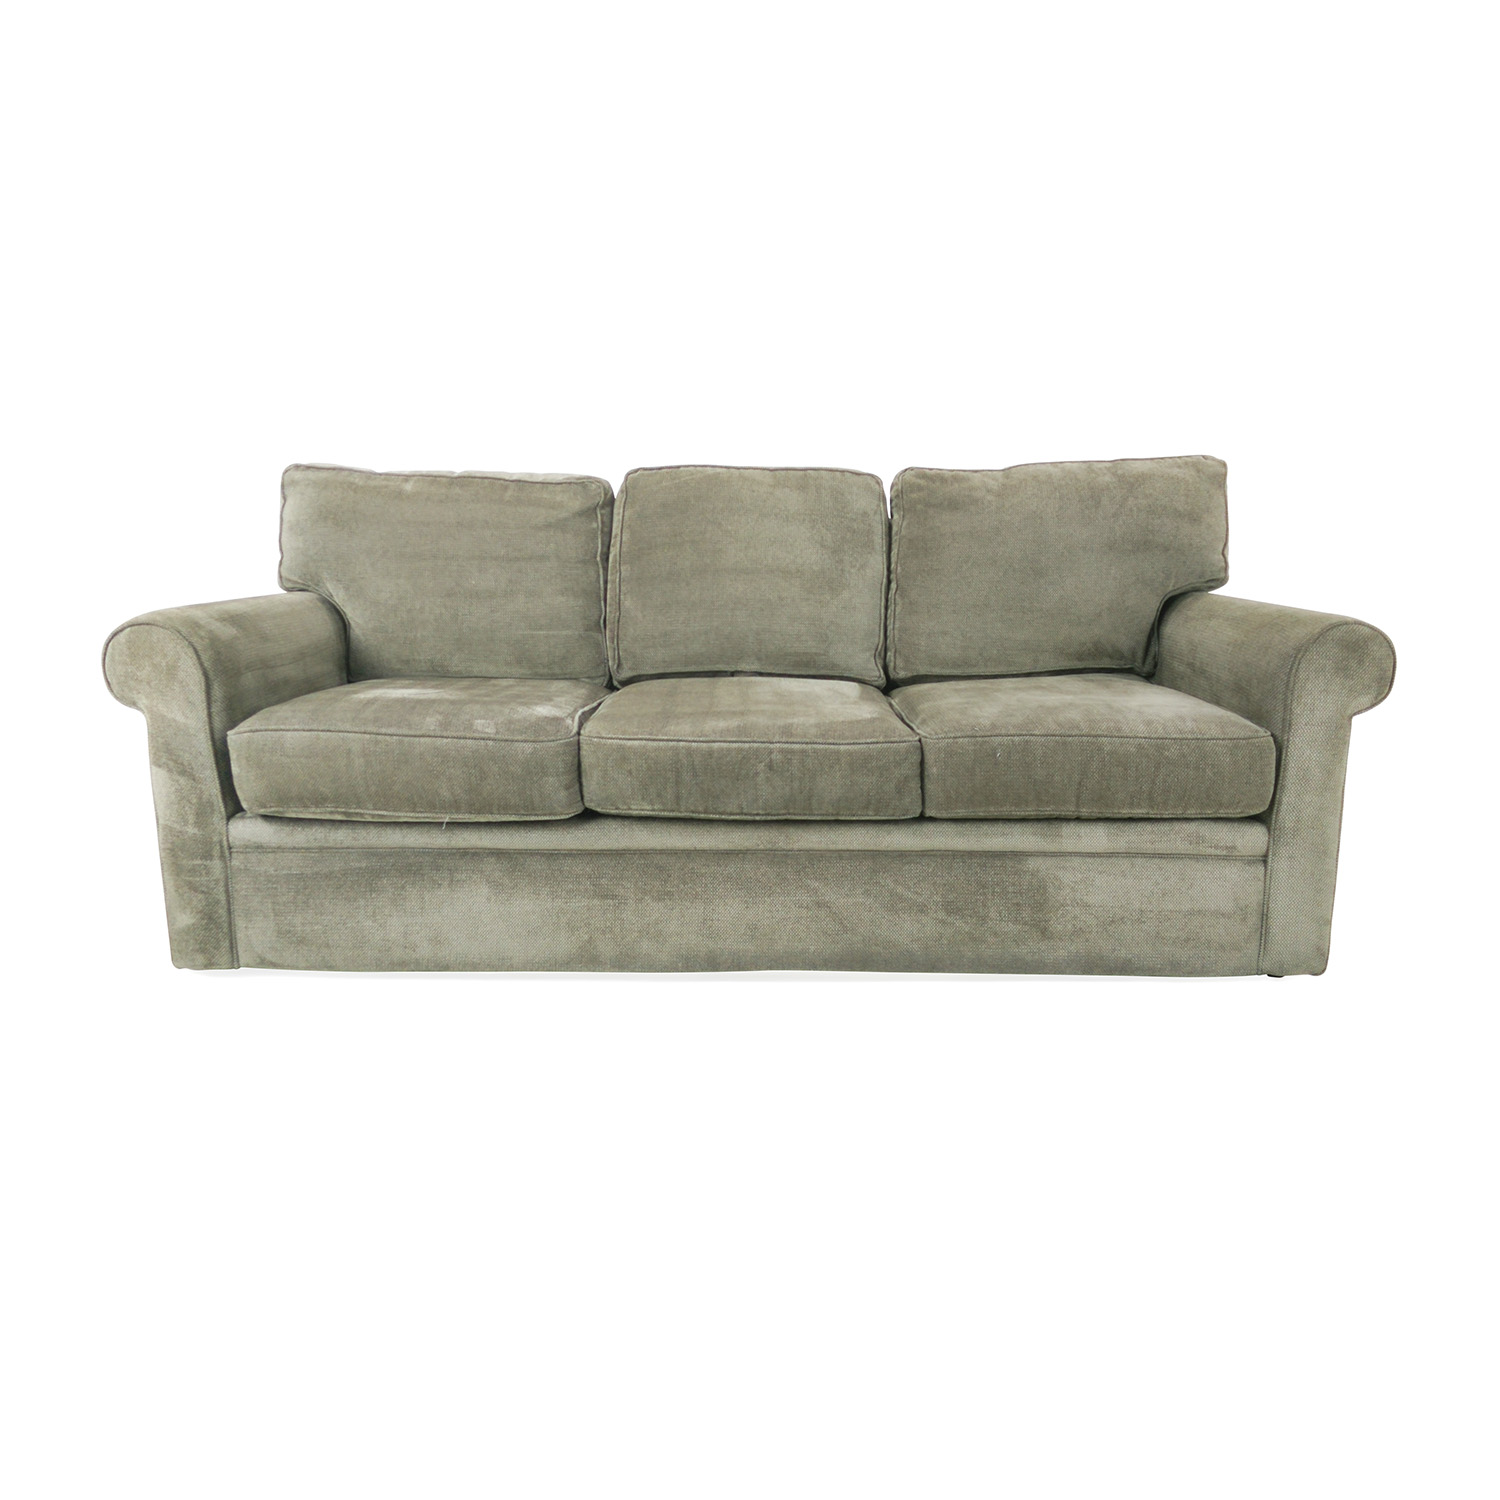 Rowe Furniture Rowe Dalton Sofa Green/Brown